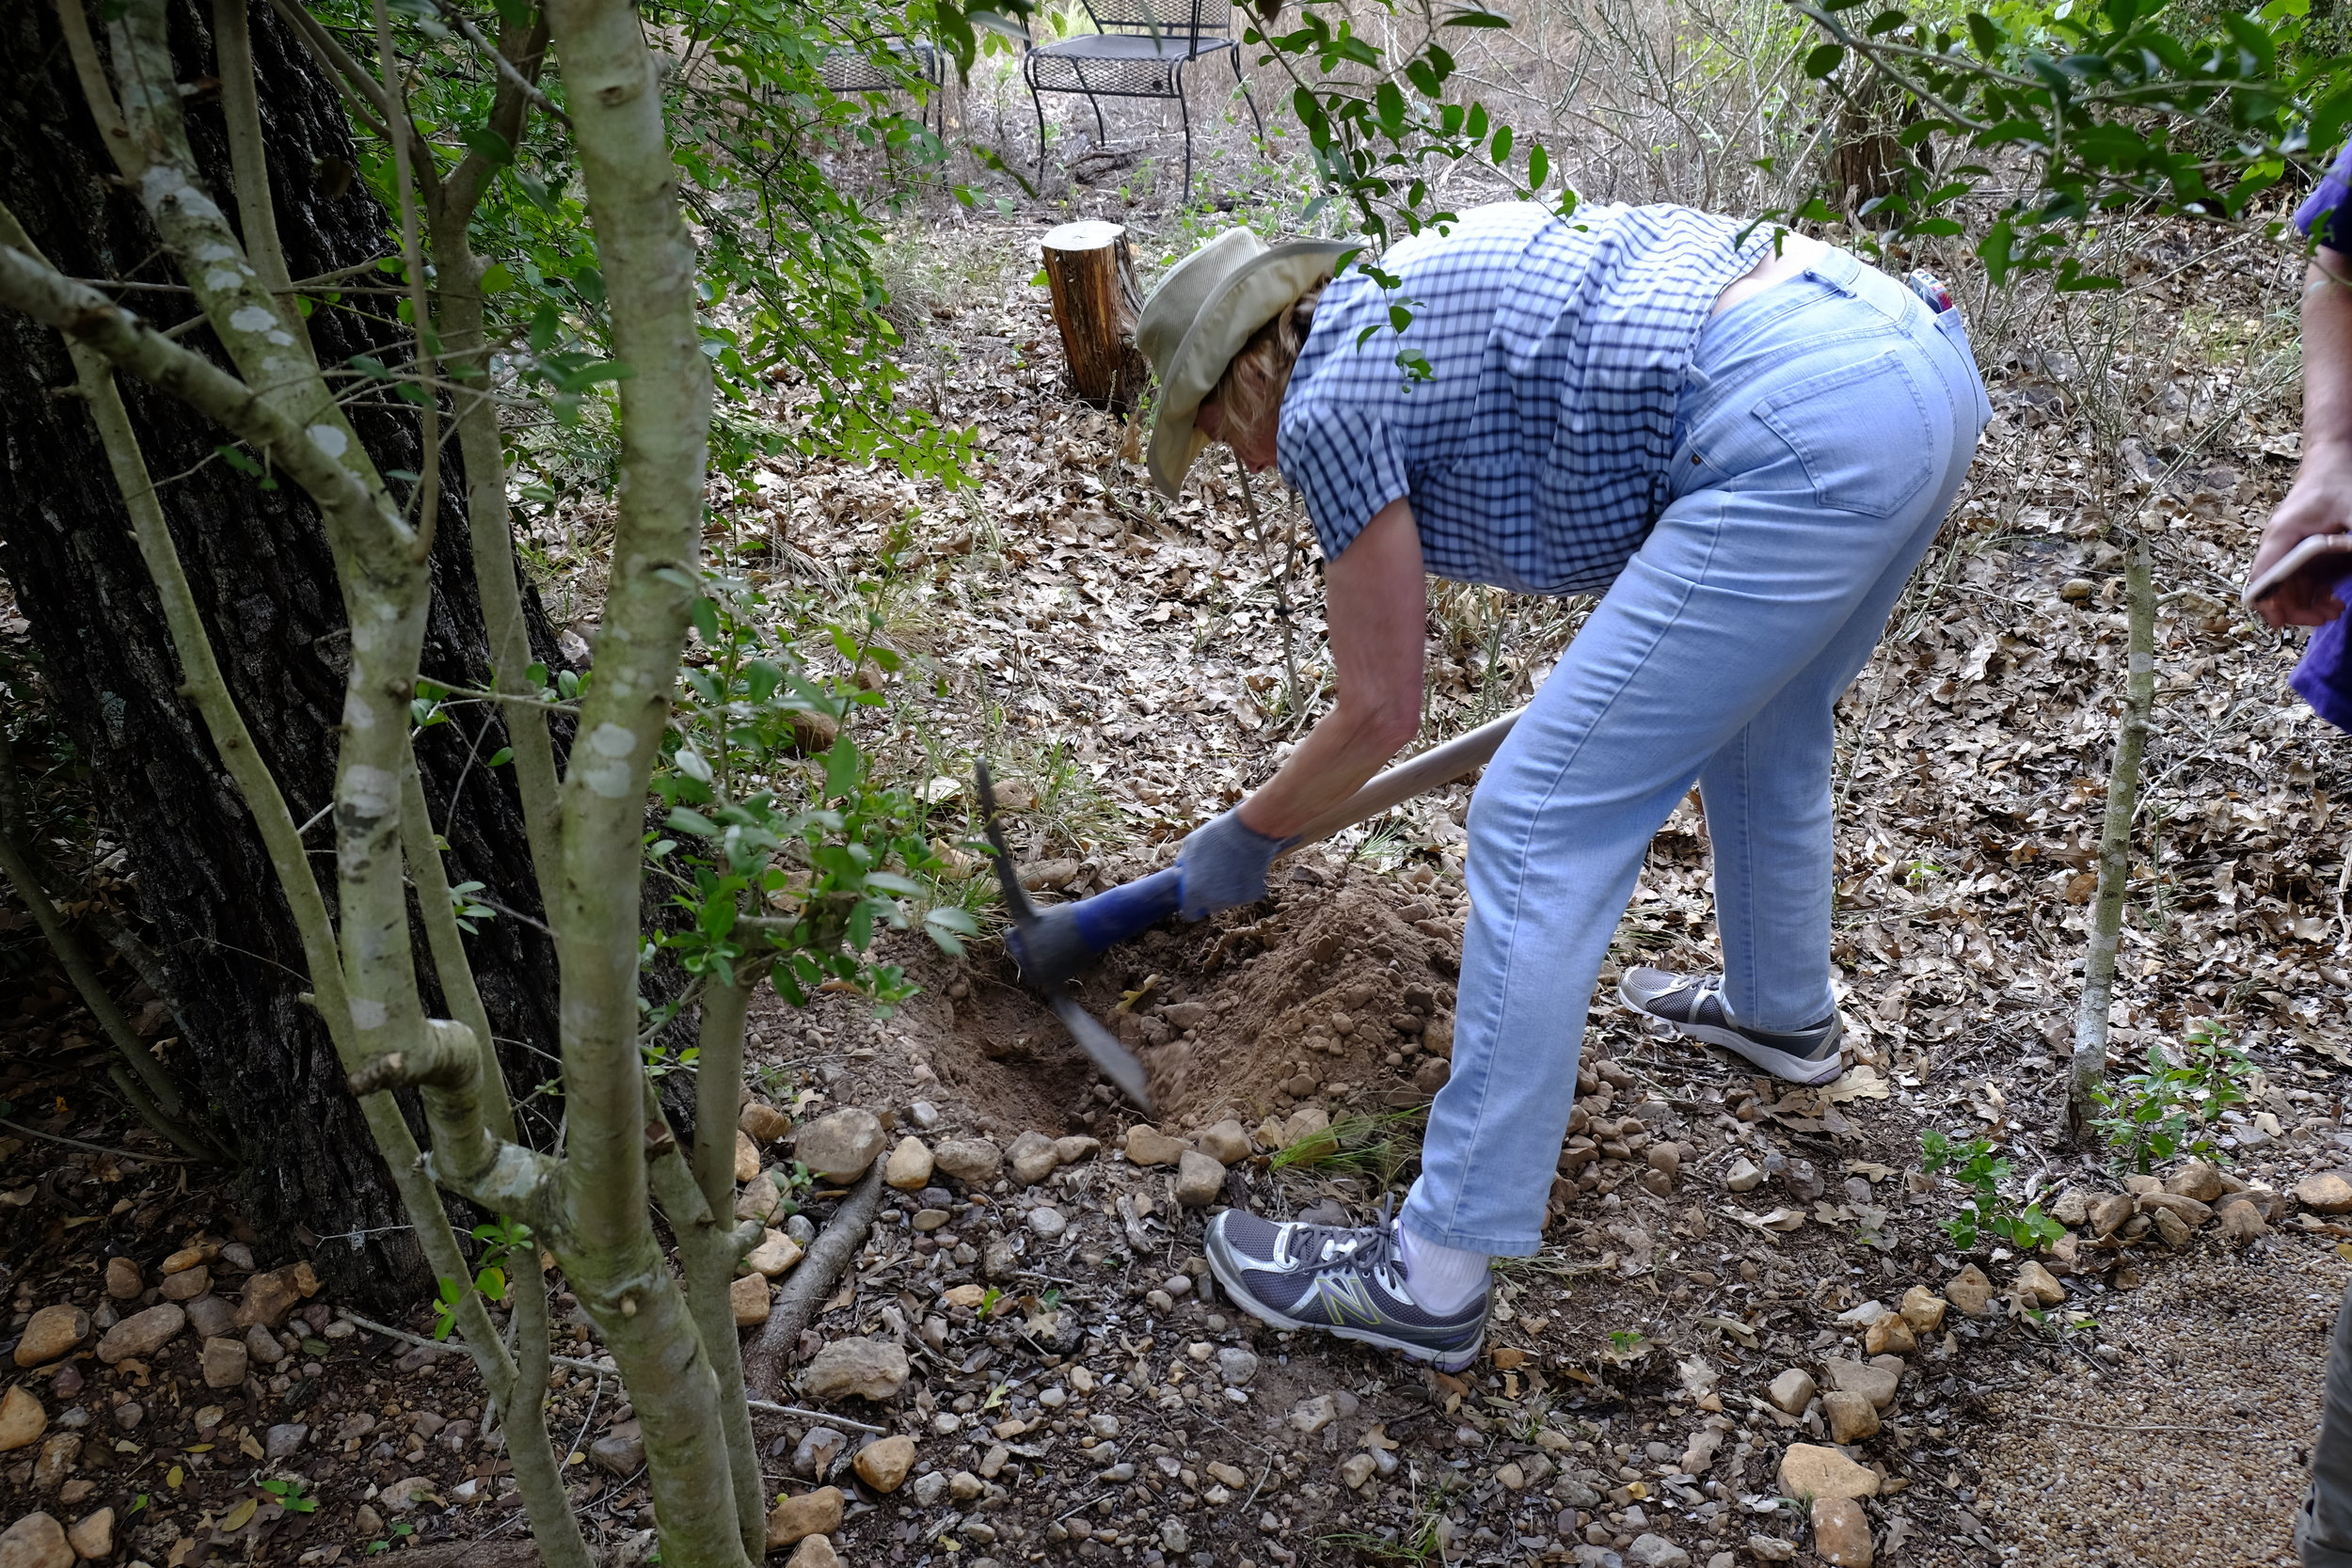 Digging a burial grave at Eloise Woods Community Natural Burial Park.   photo by Tom Bailey